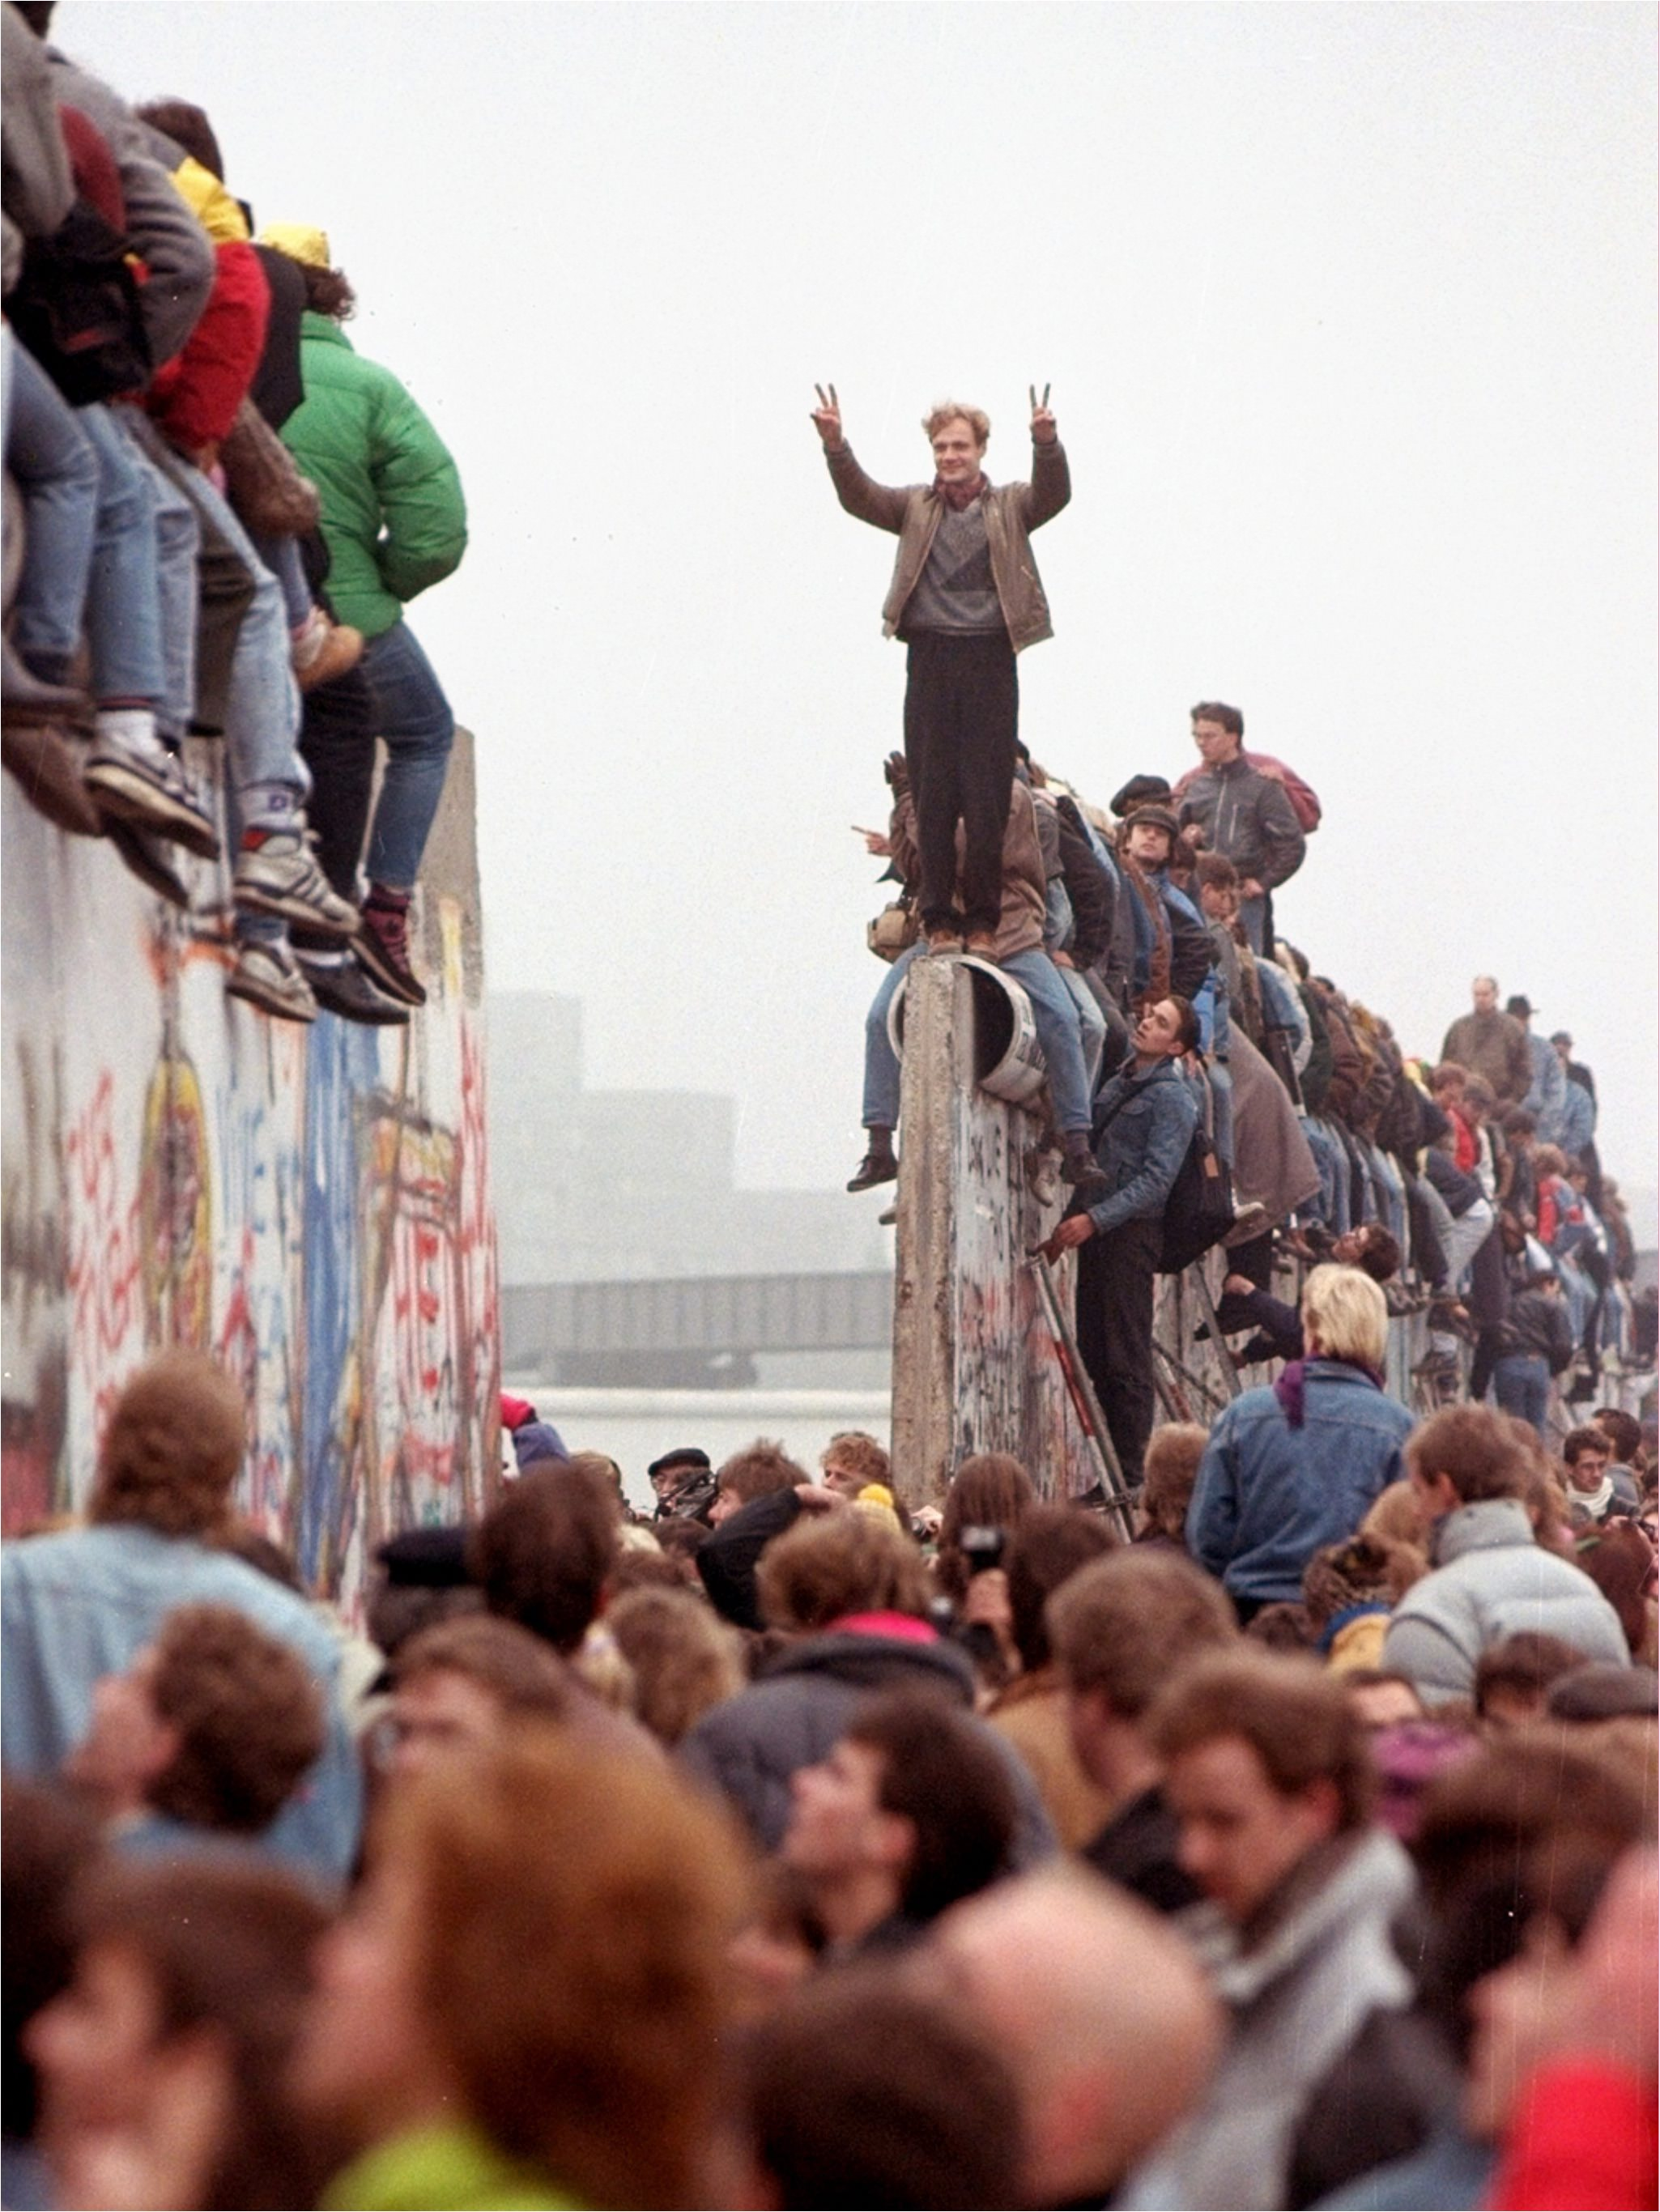 A man atop the Wall raises his arms in triumph in 1989 as people below surge through a breach in the barricade.